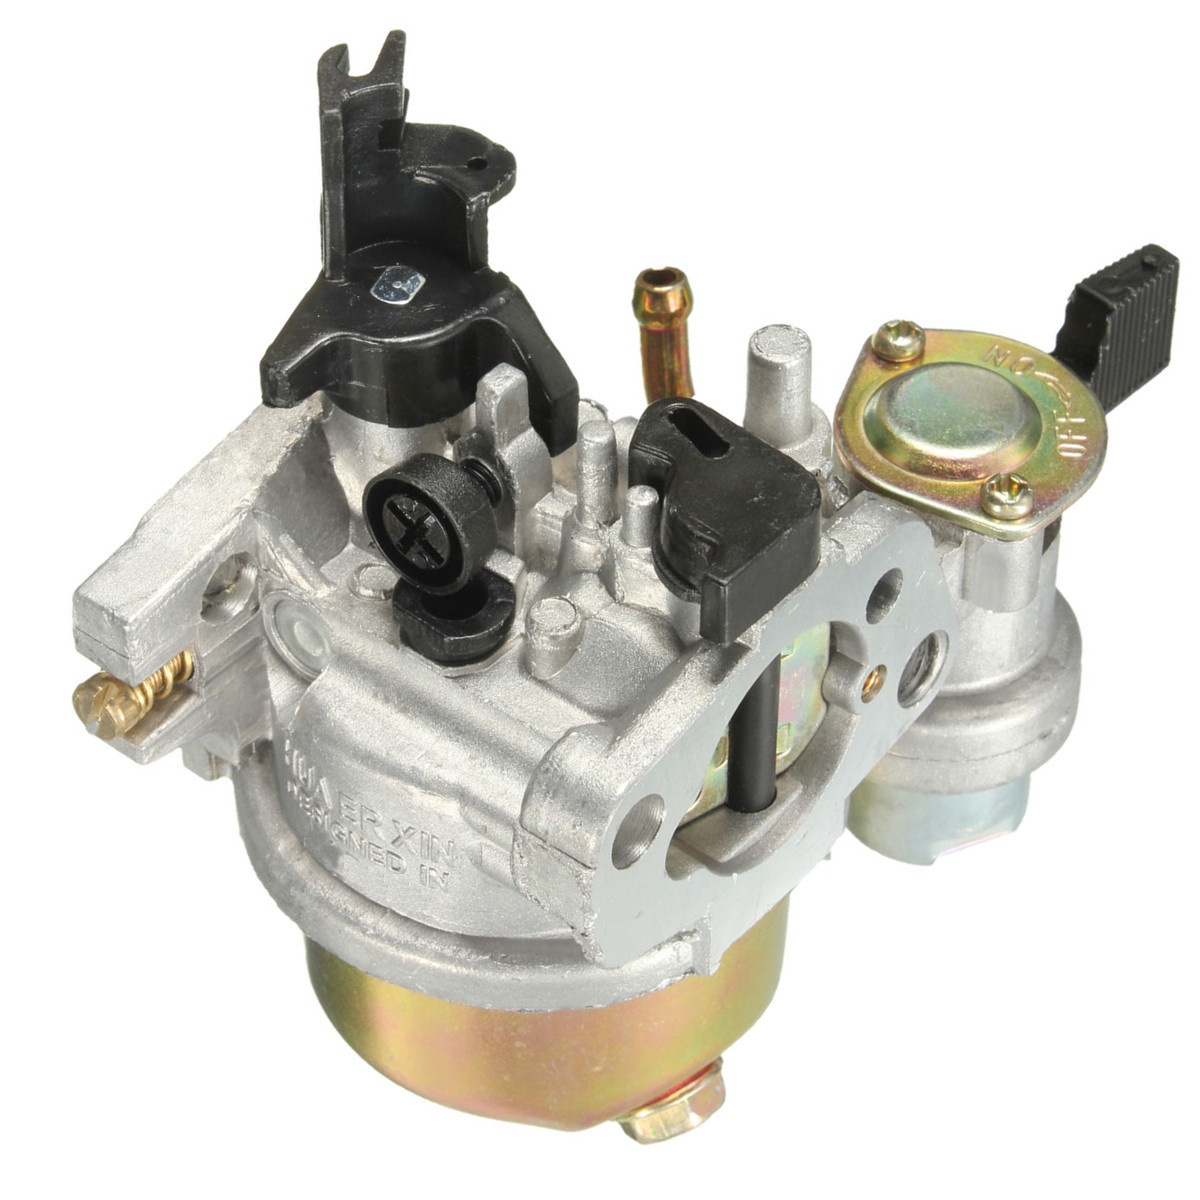 Replacement Carburetor Carb For Honda GX110 GX120 110 120 4HP Engine Motor | Alex NLD